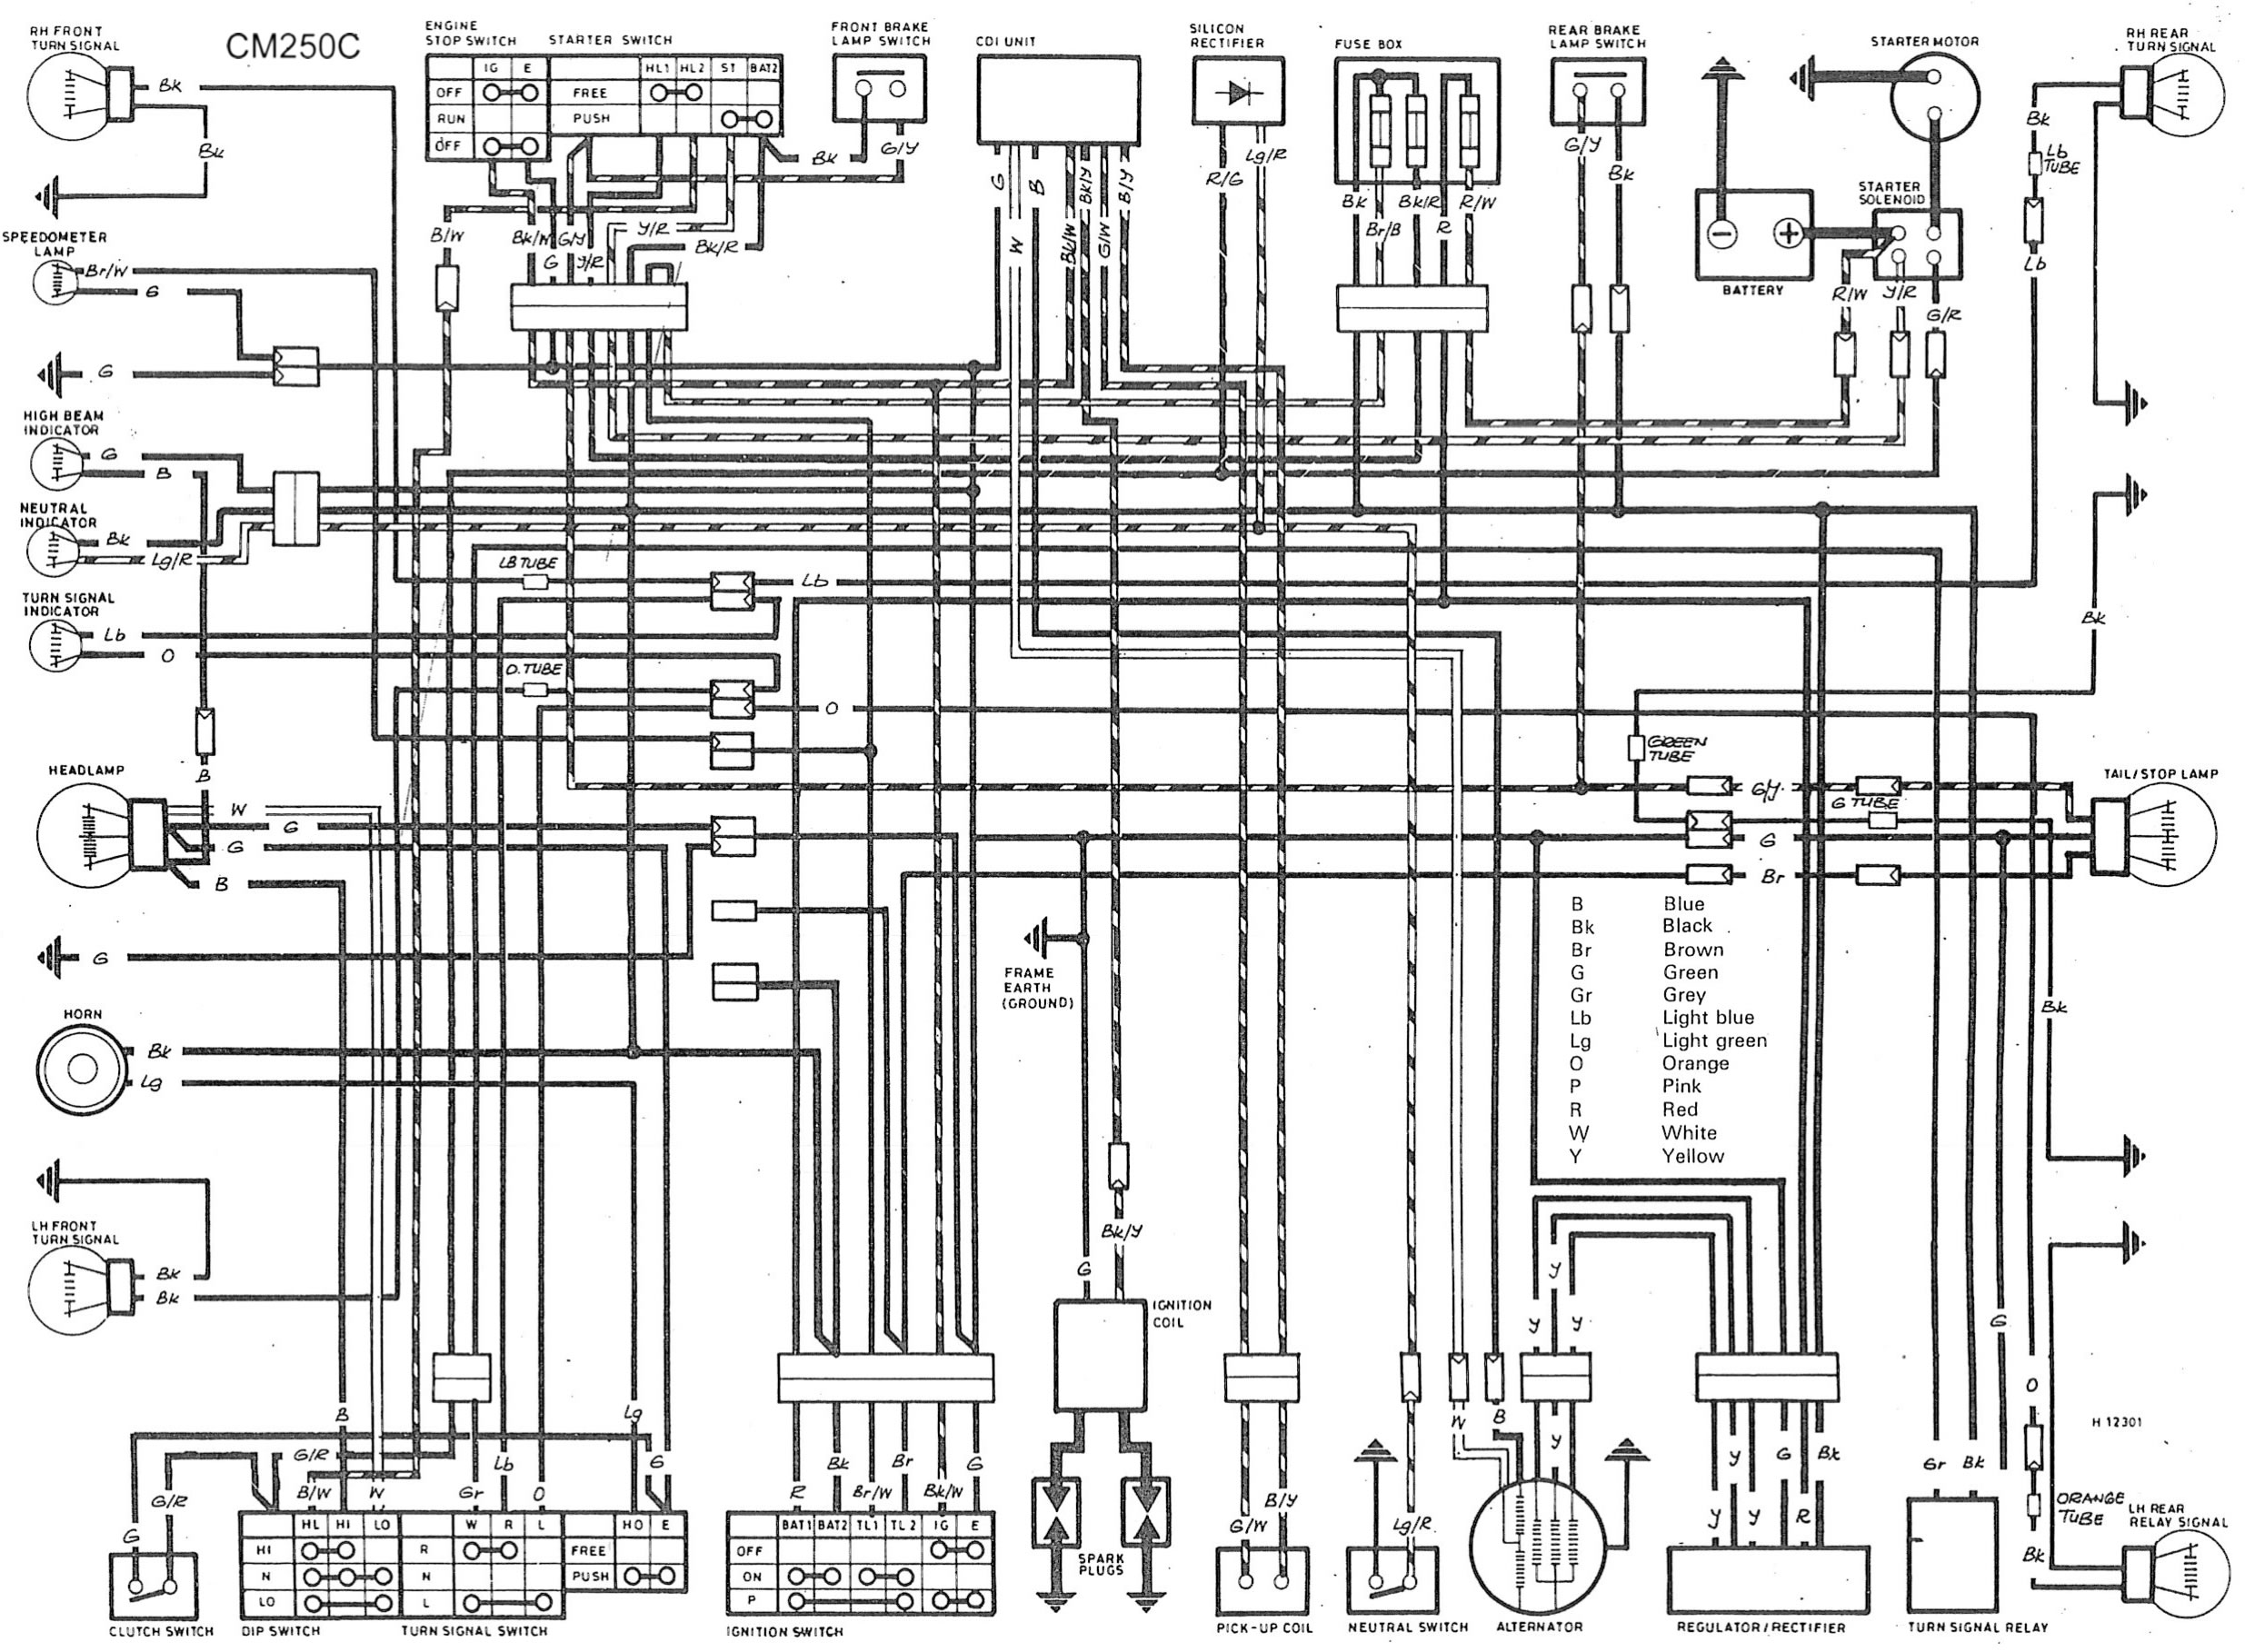 wirediagram cm wiring diagram cm hoist wiring diagram \u2022 wiring diagrams j honda rebel 250 wiring diagram at honlapkeszites.co